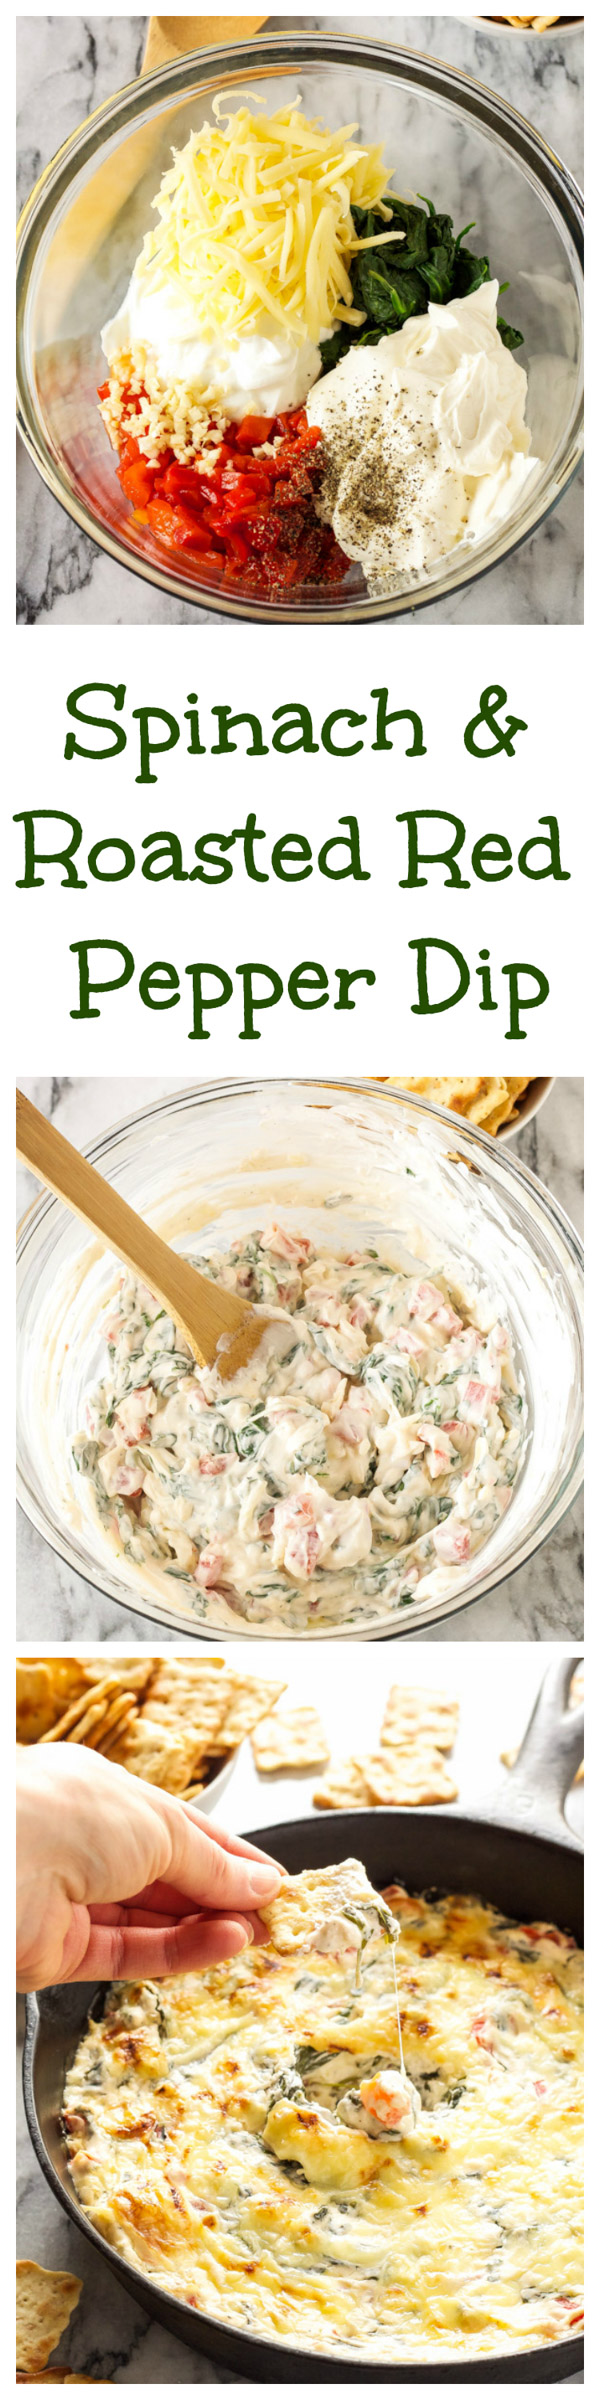 Spinach and Roasted Red Pepper Dip   This creamy and cheesy dip is the perfect appetizer for parties and holiday entertaining! @target #WaysToWow #ad   www.reciperunner.com